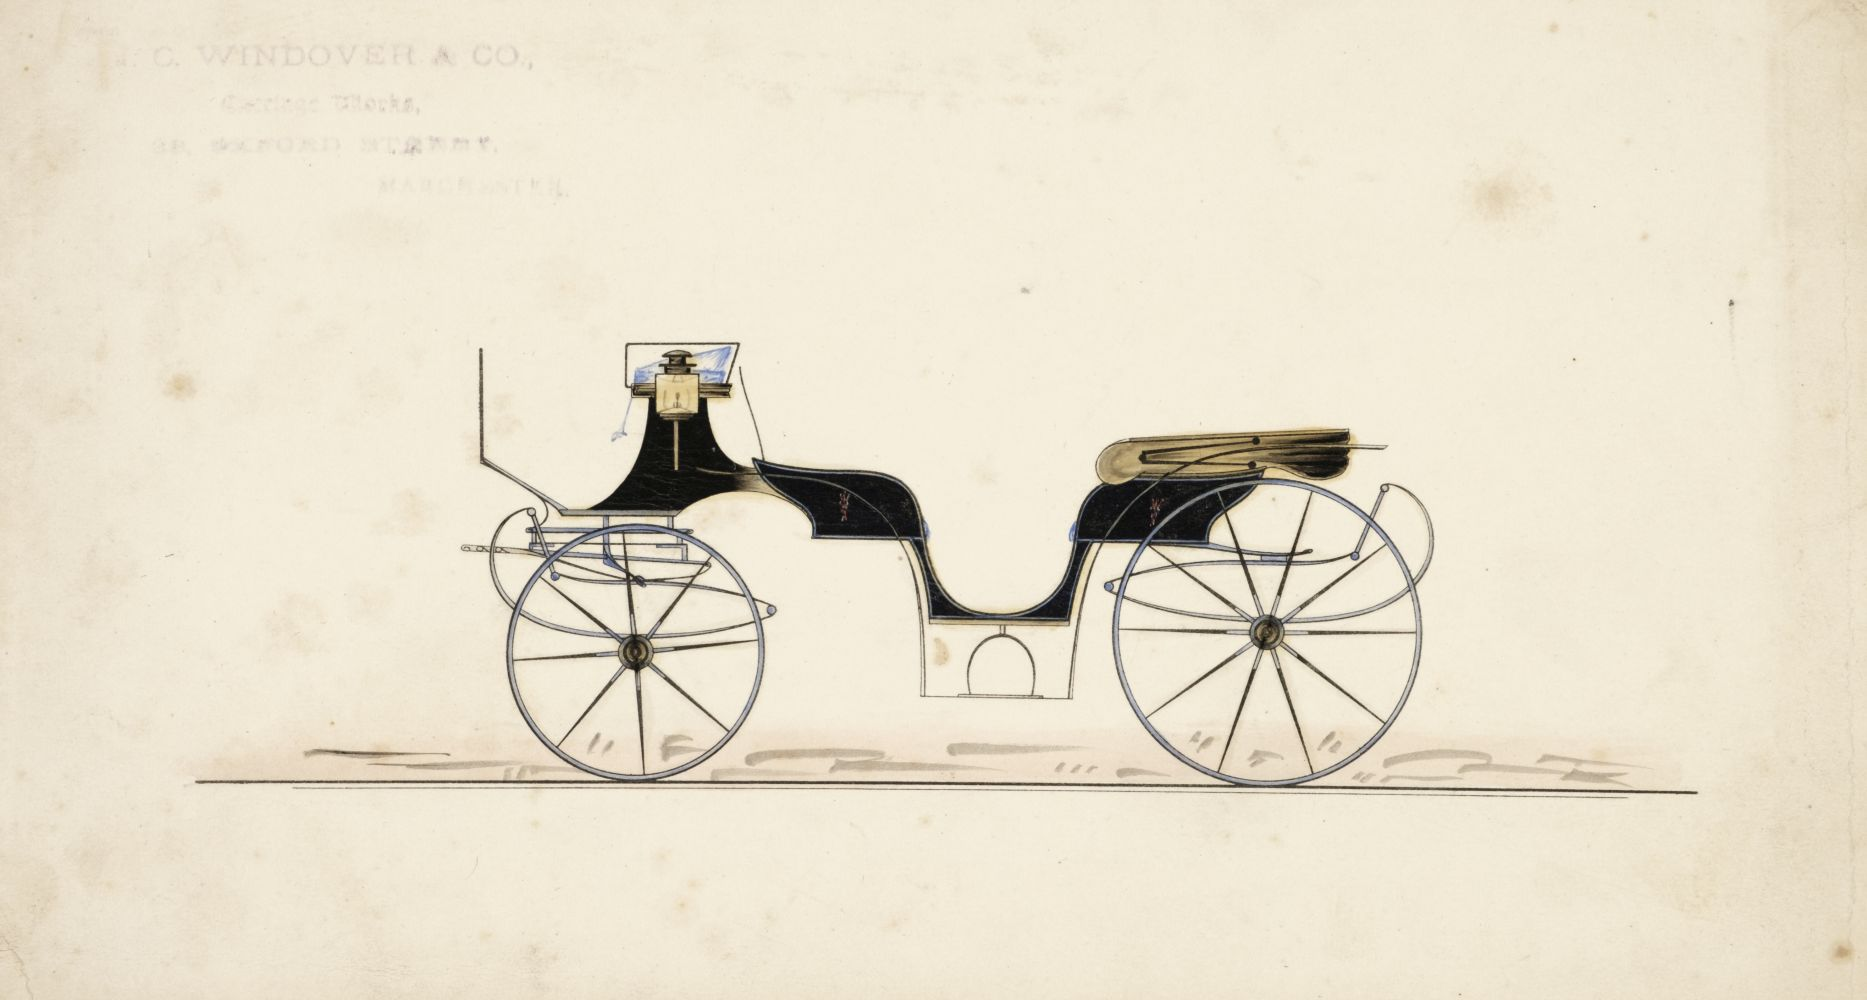 * Coaching. Four watercolours of coach designs, mid 19th century